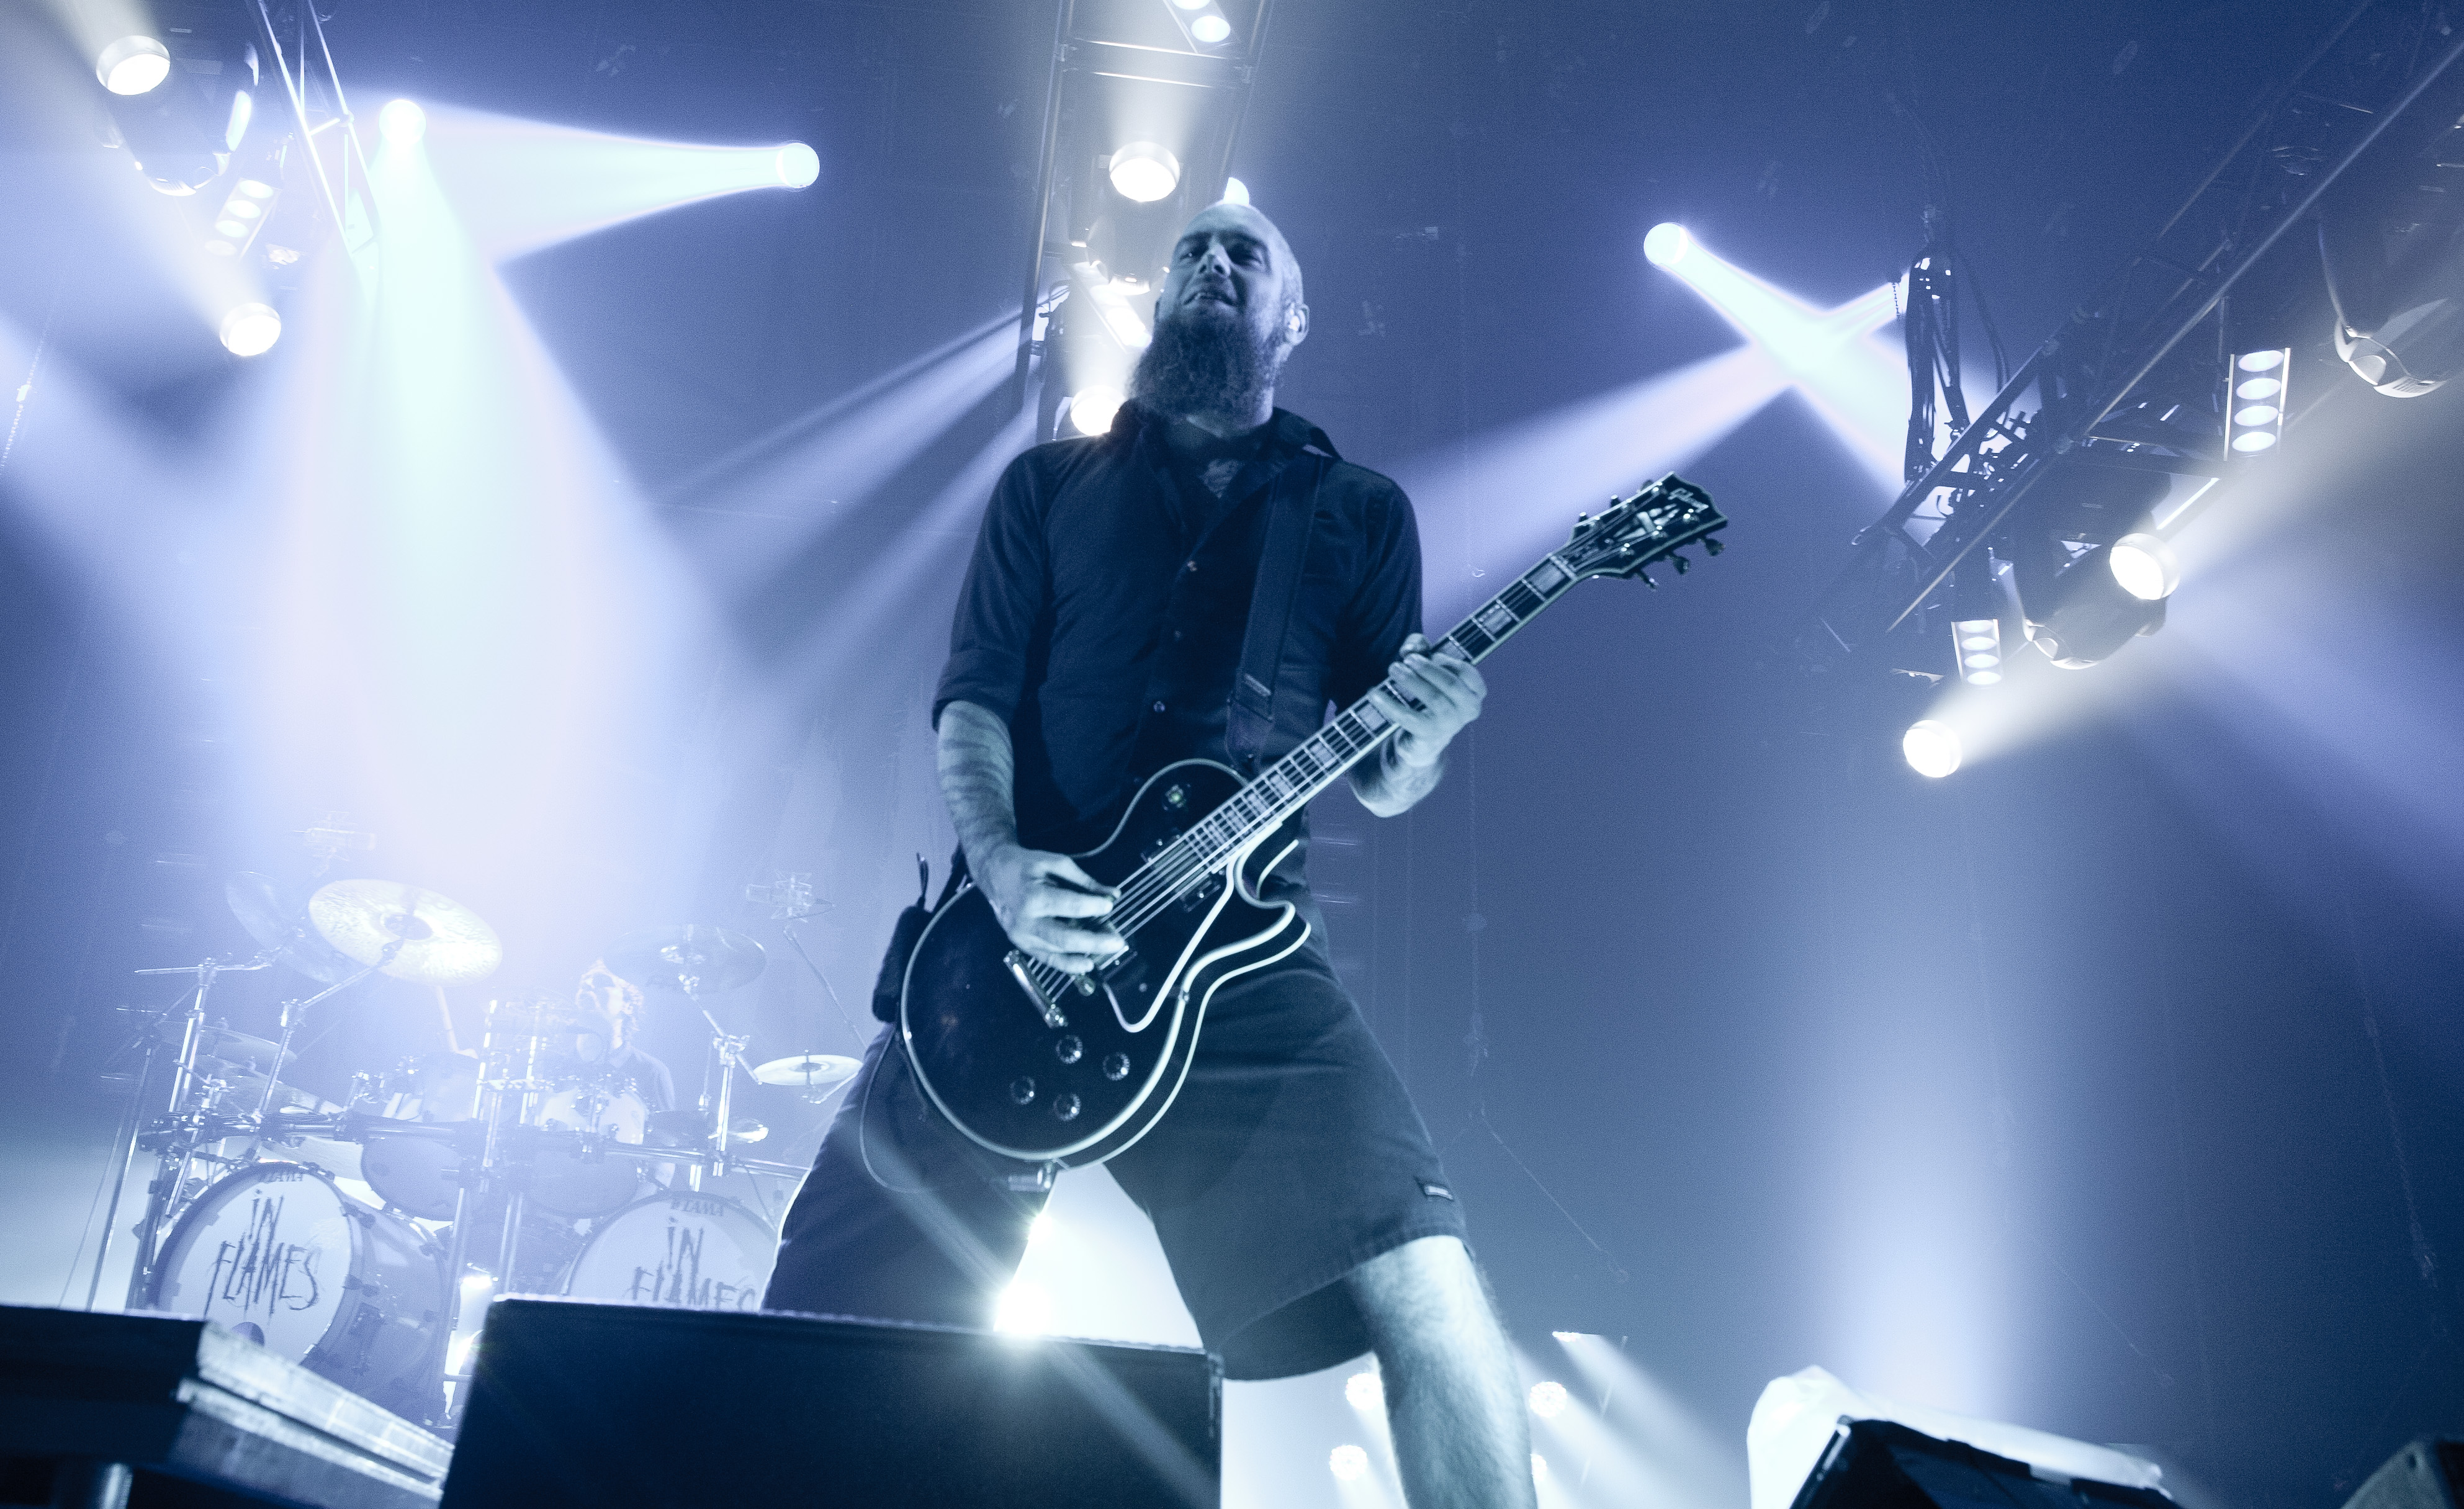 in_flames_sounds_of_a_playground_fading_tour_2011_muenchen_6_20111124_1074762031